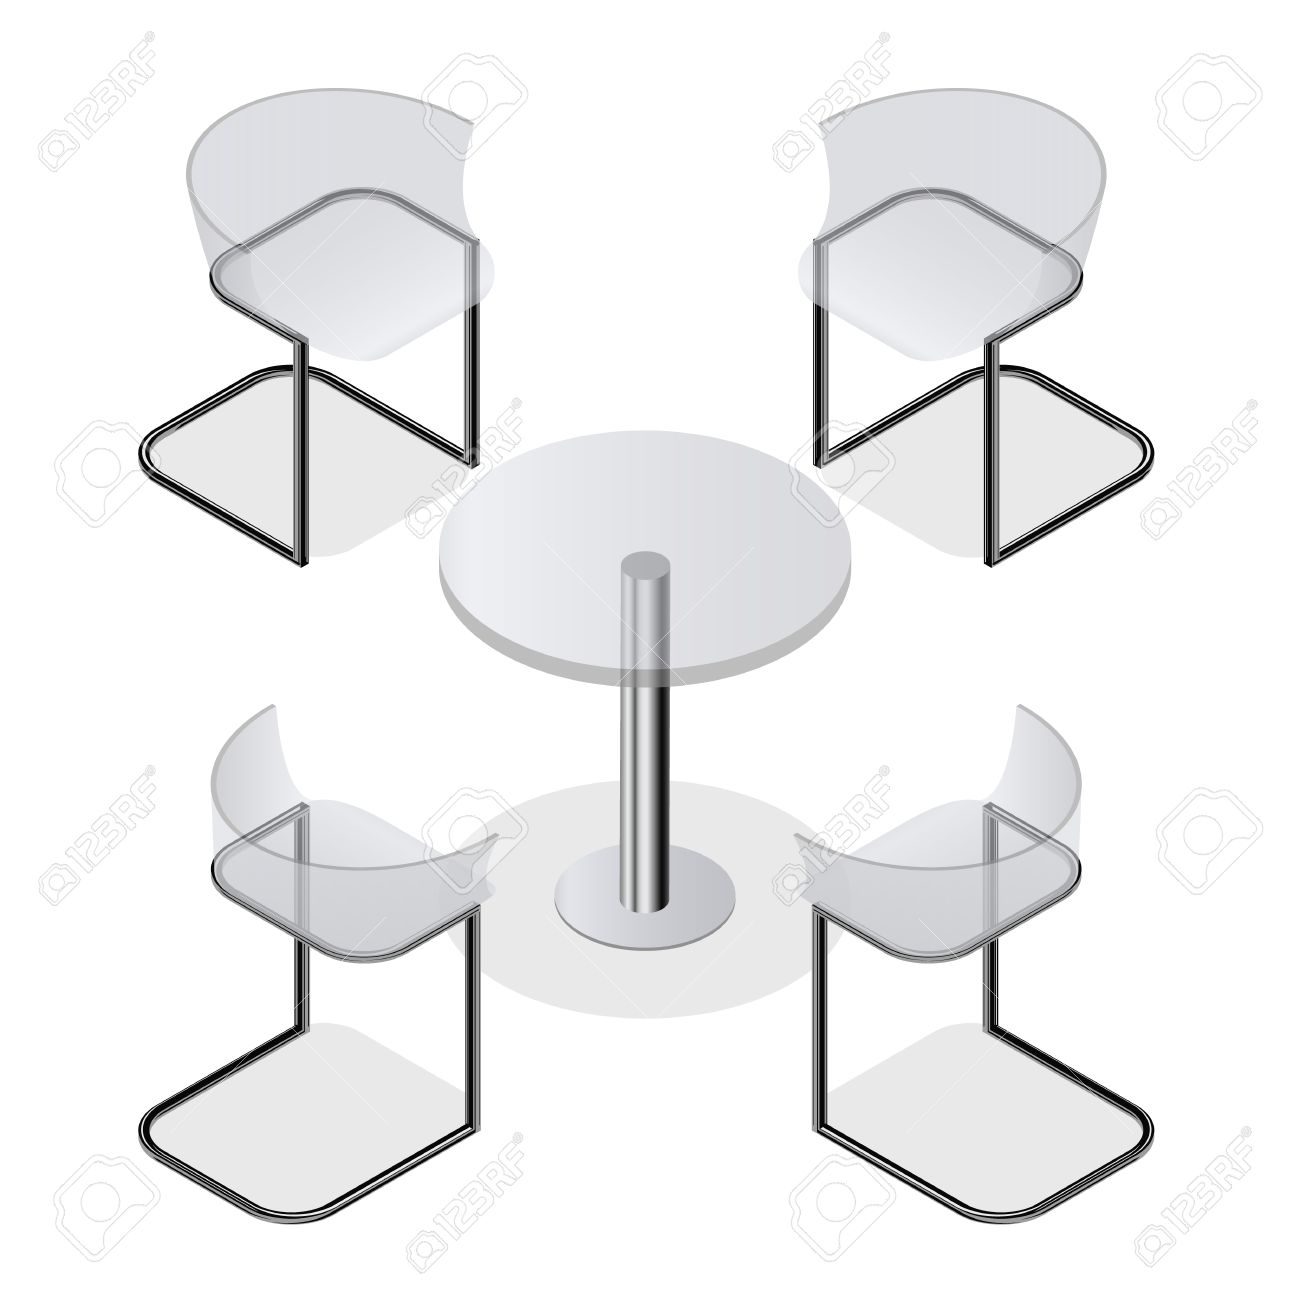 Set Of Transparent Isometric Chairs And A Round Table For The ...